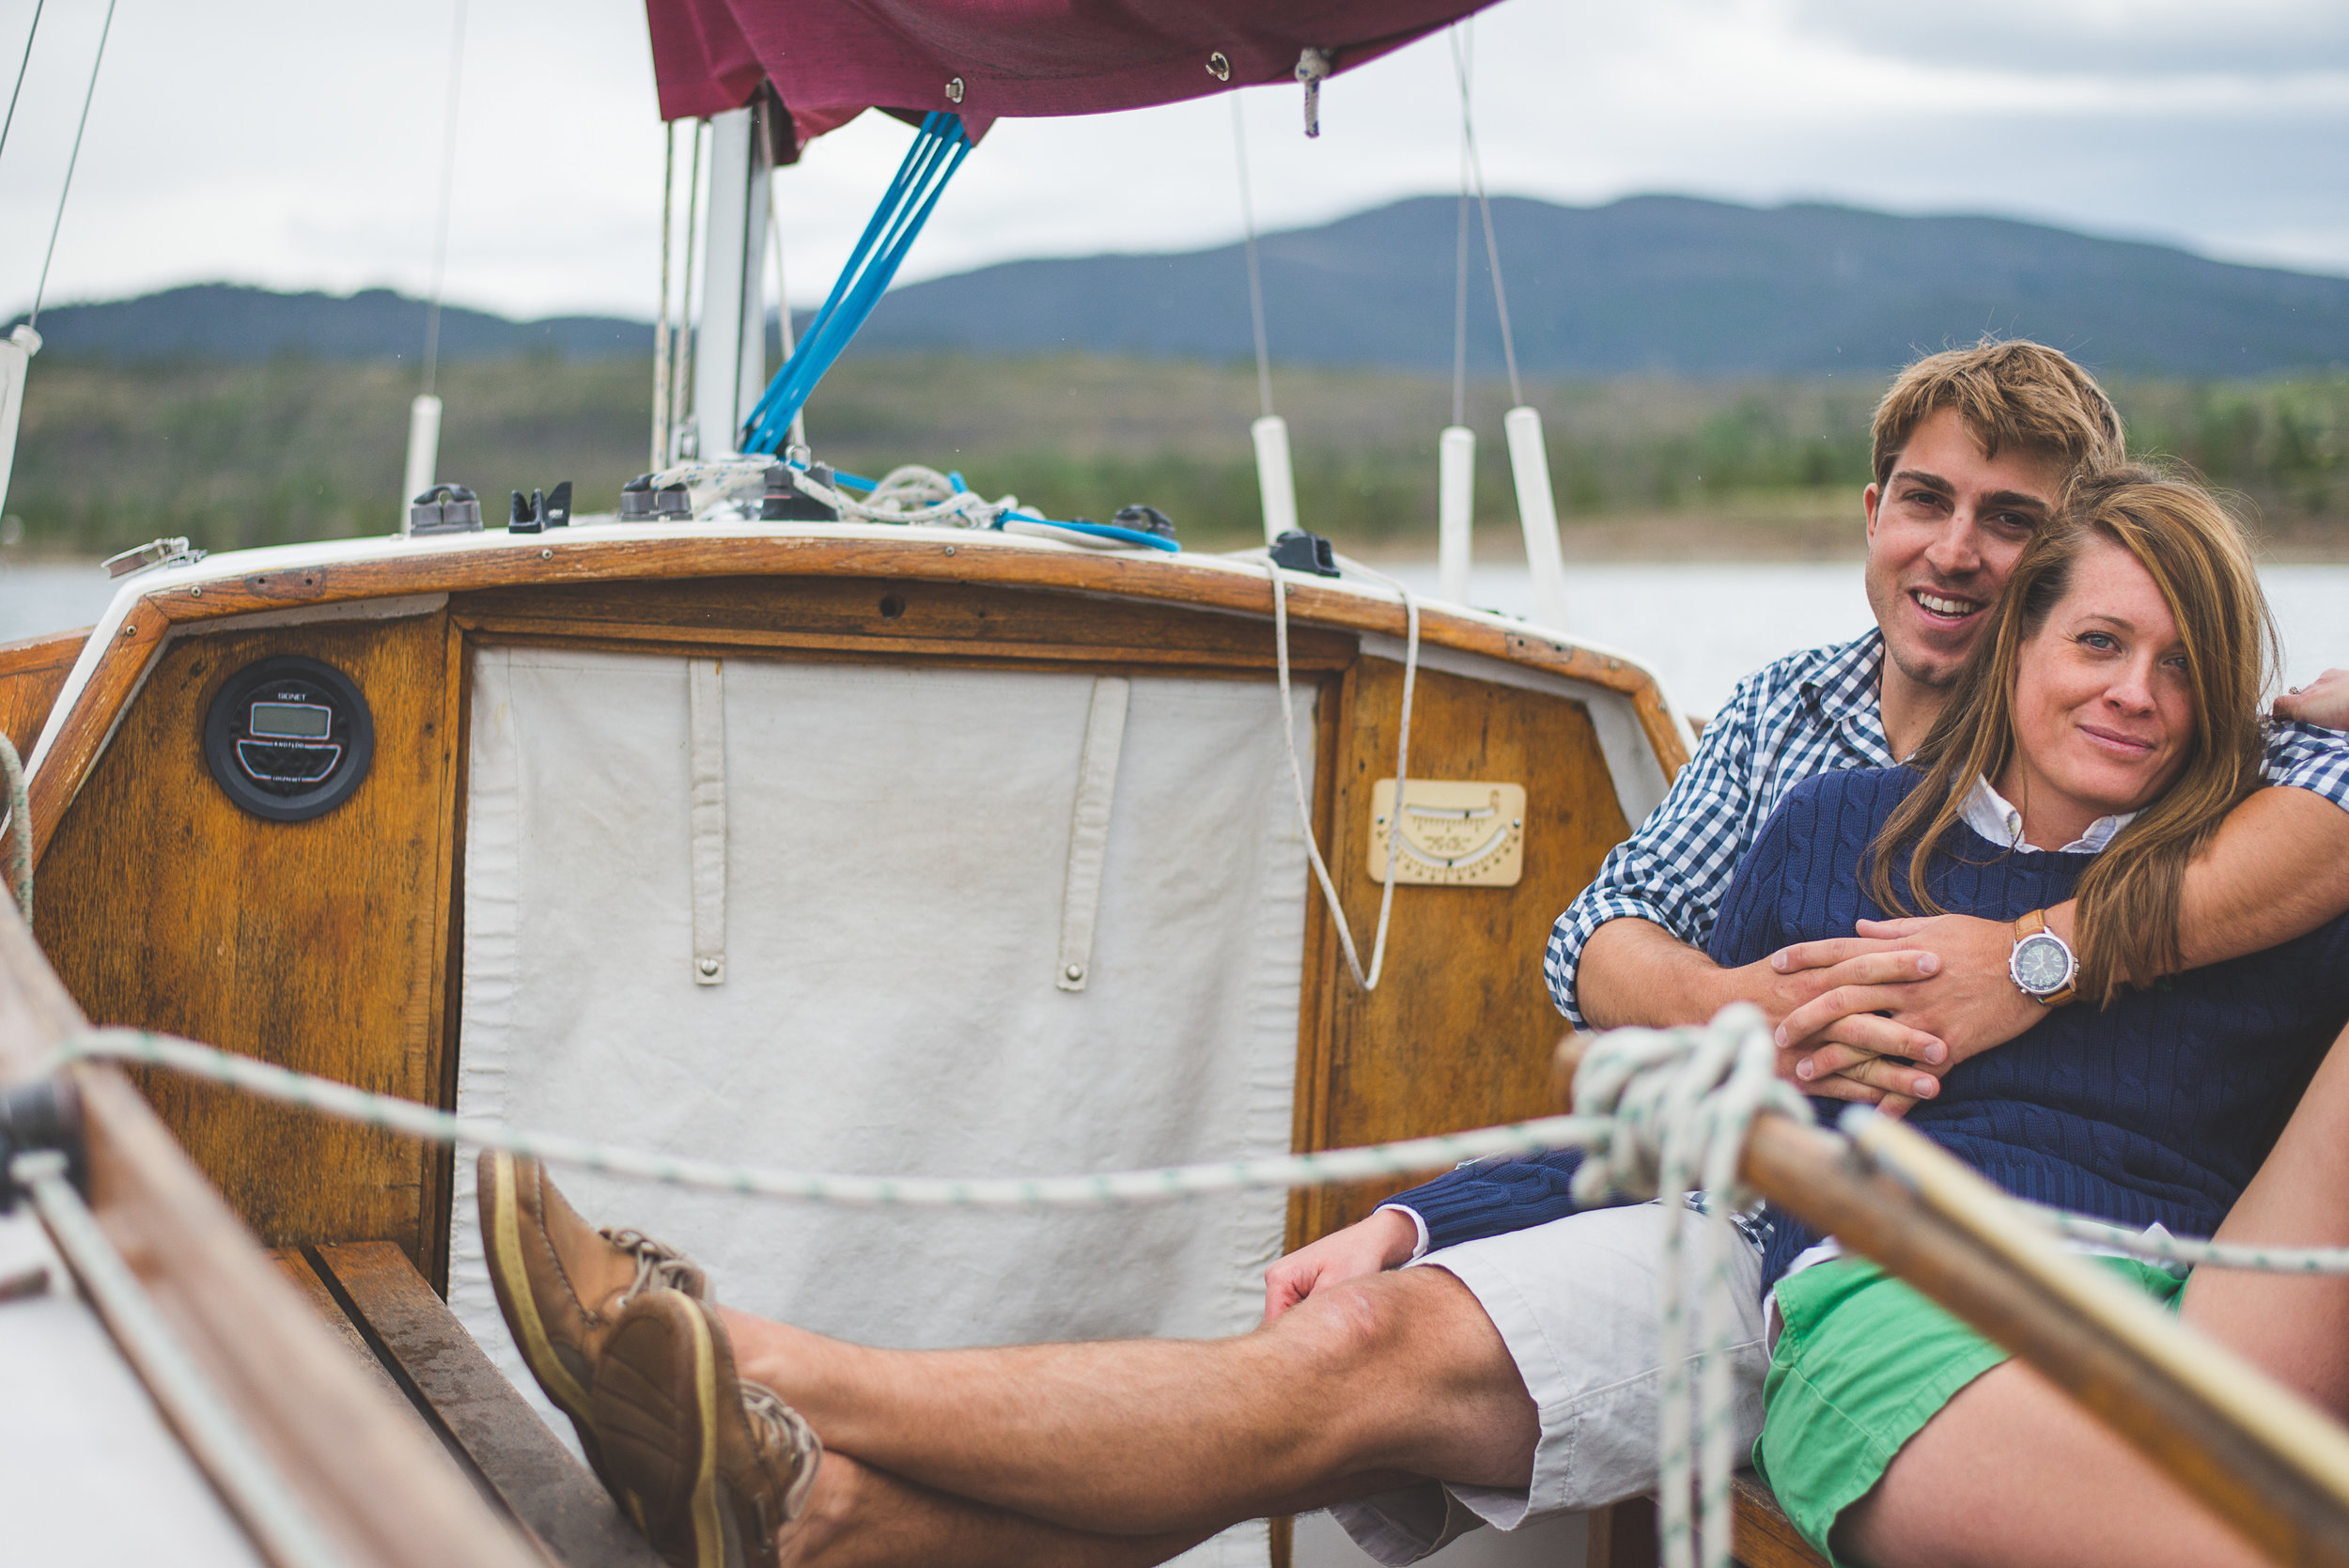 Engagement session on Lake Dillon with sailboat and bikes   It's All in the Details   Keeping Composure Photography